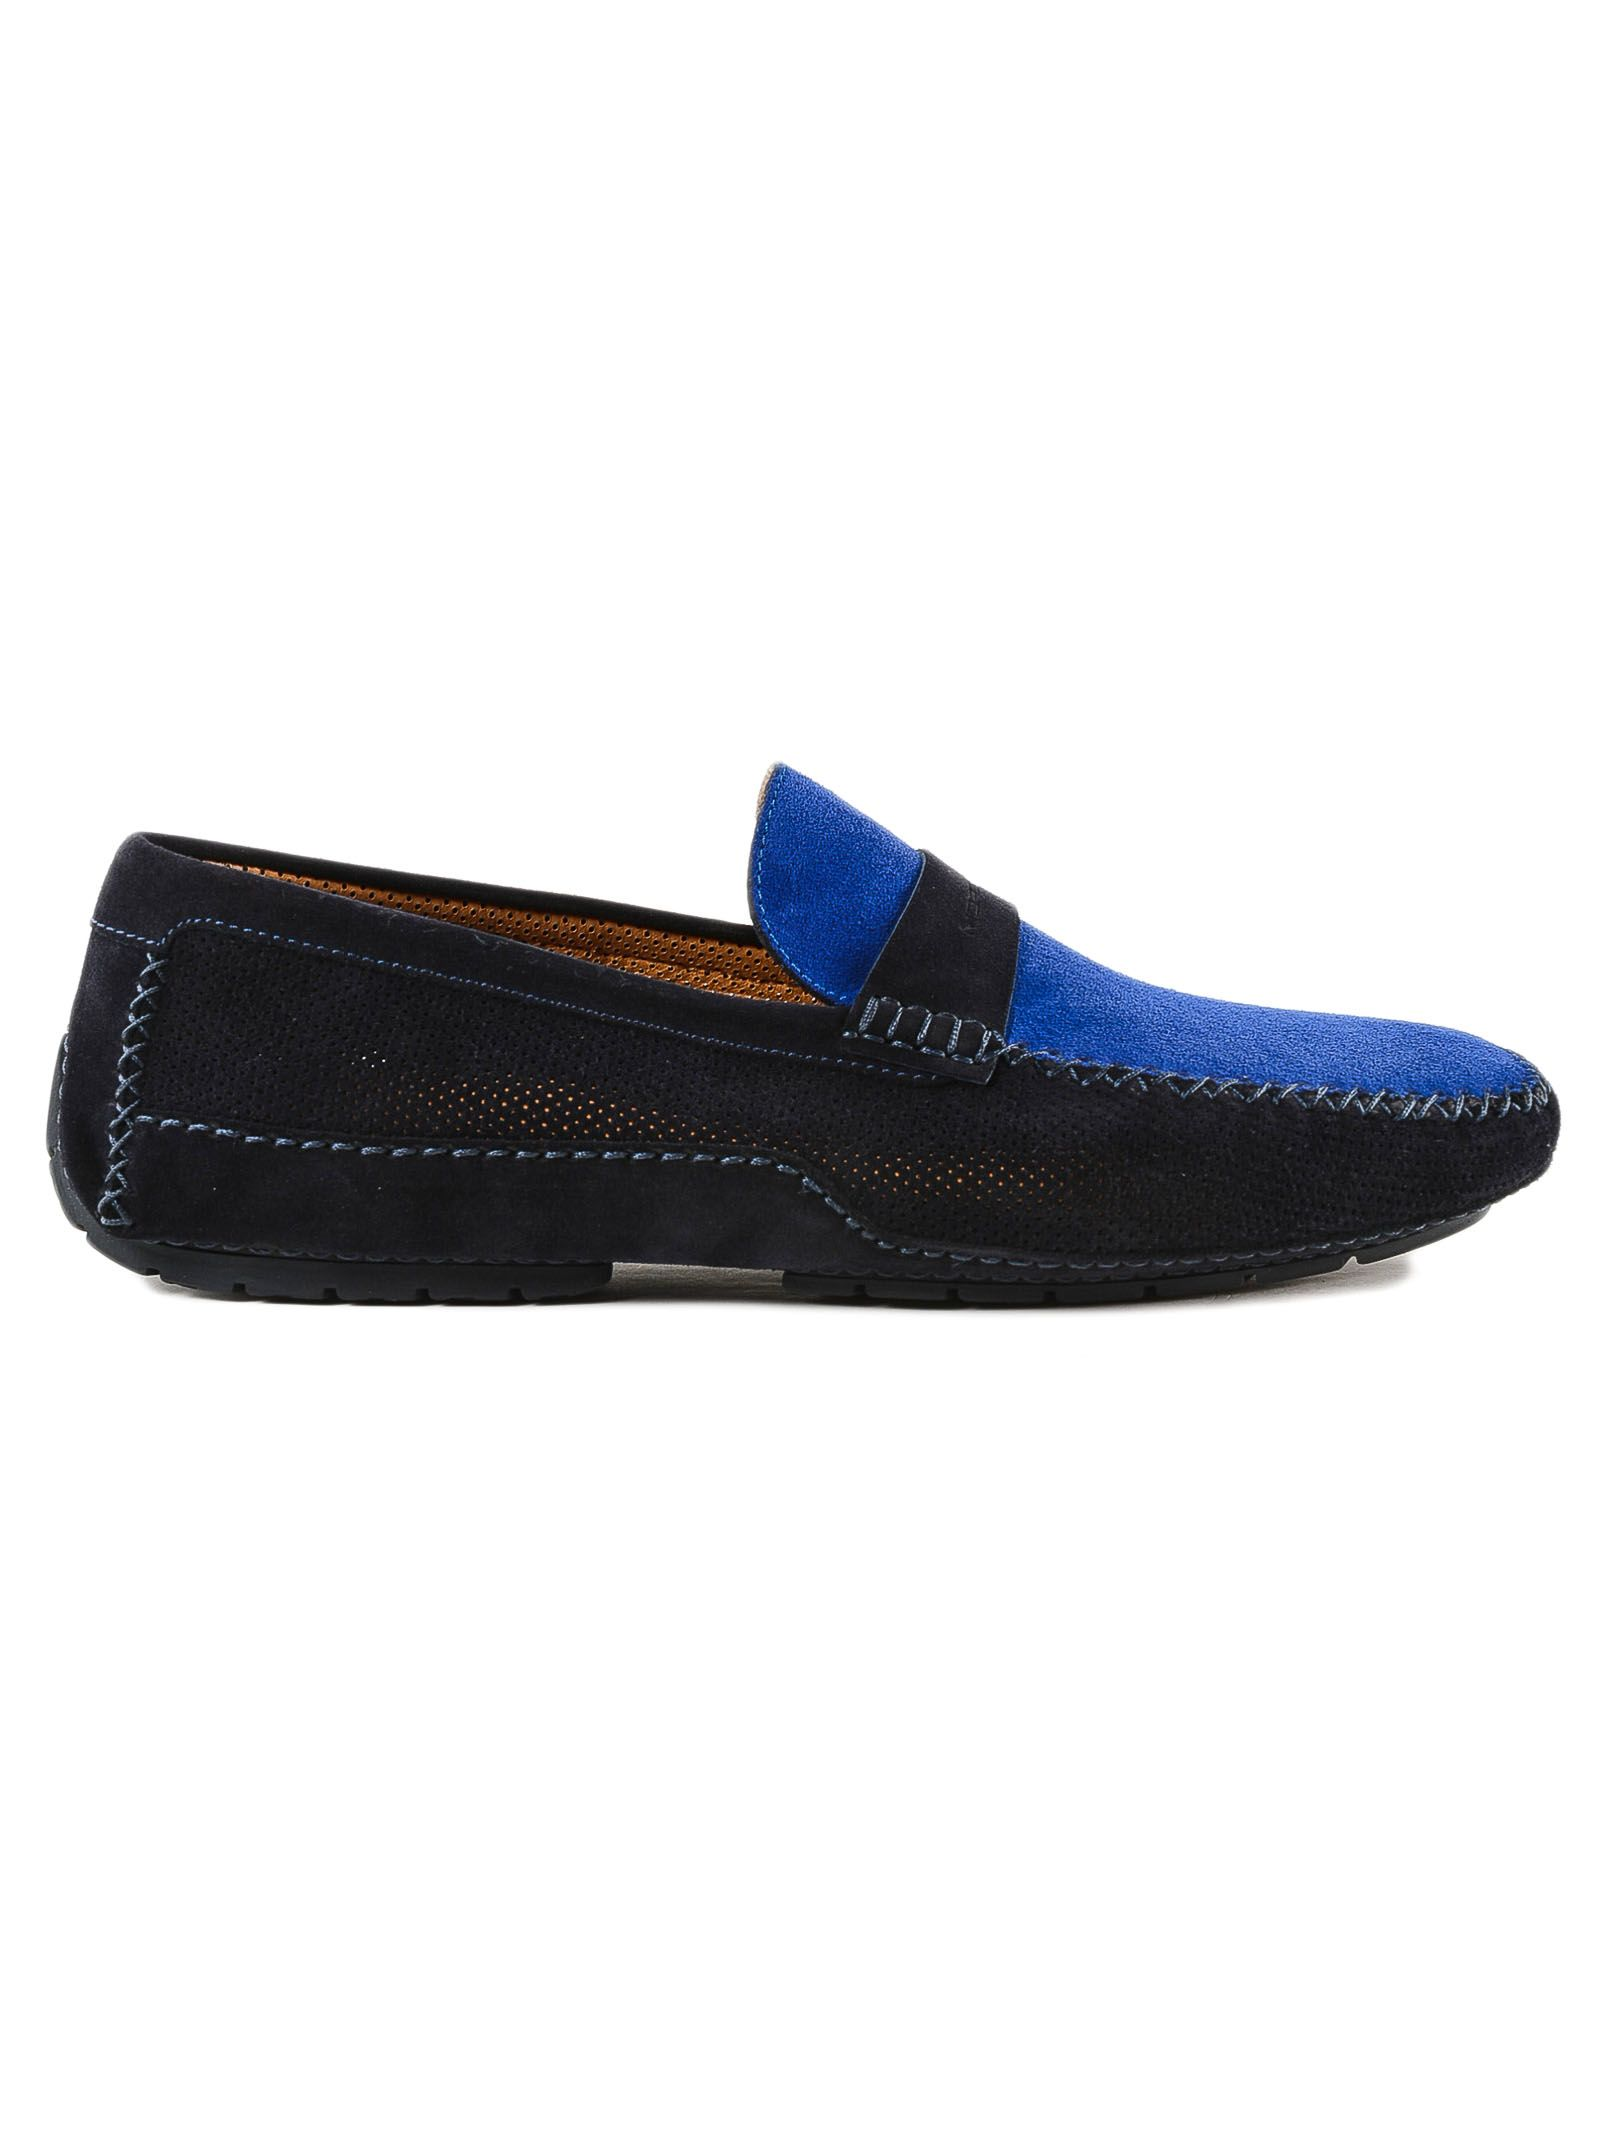 Moreschi Perforated Loafers